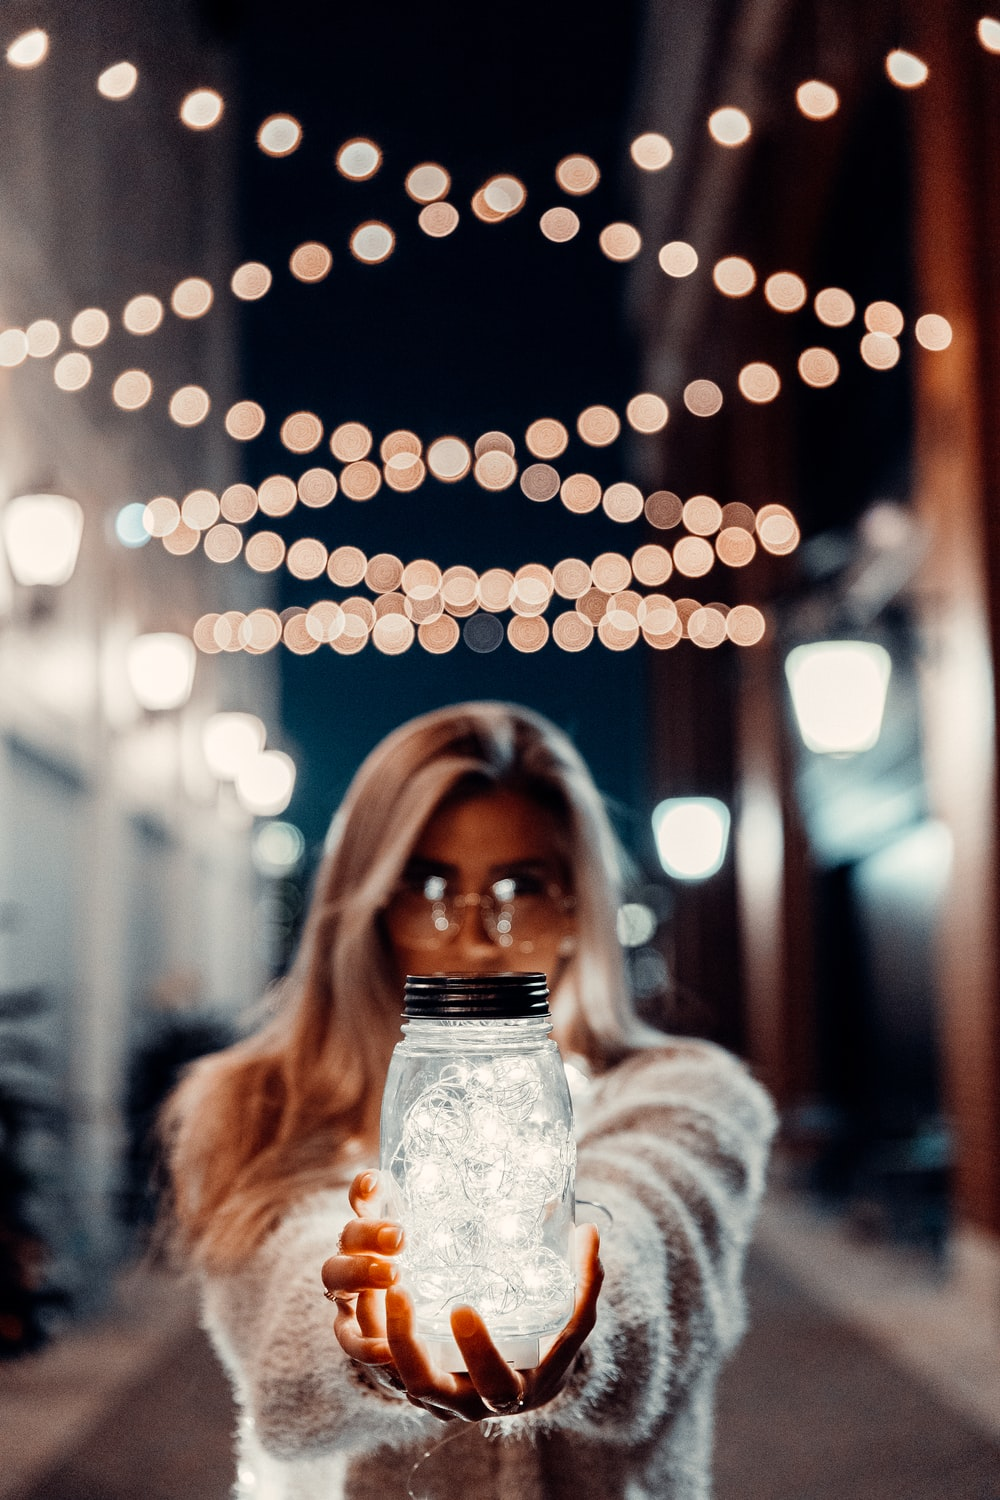 woman in white sweater holding clear glass jar